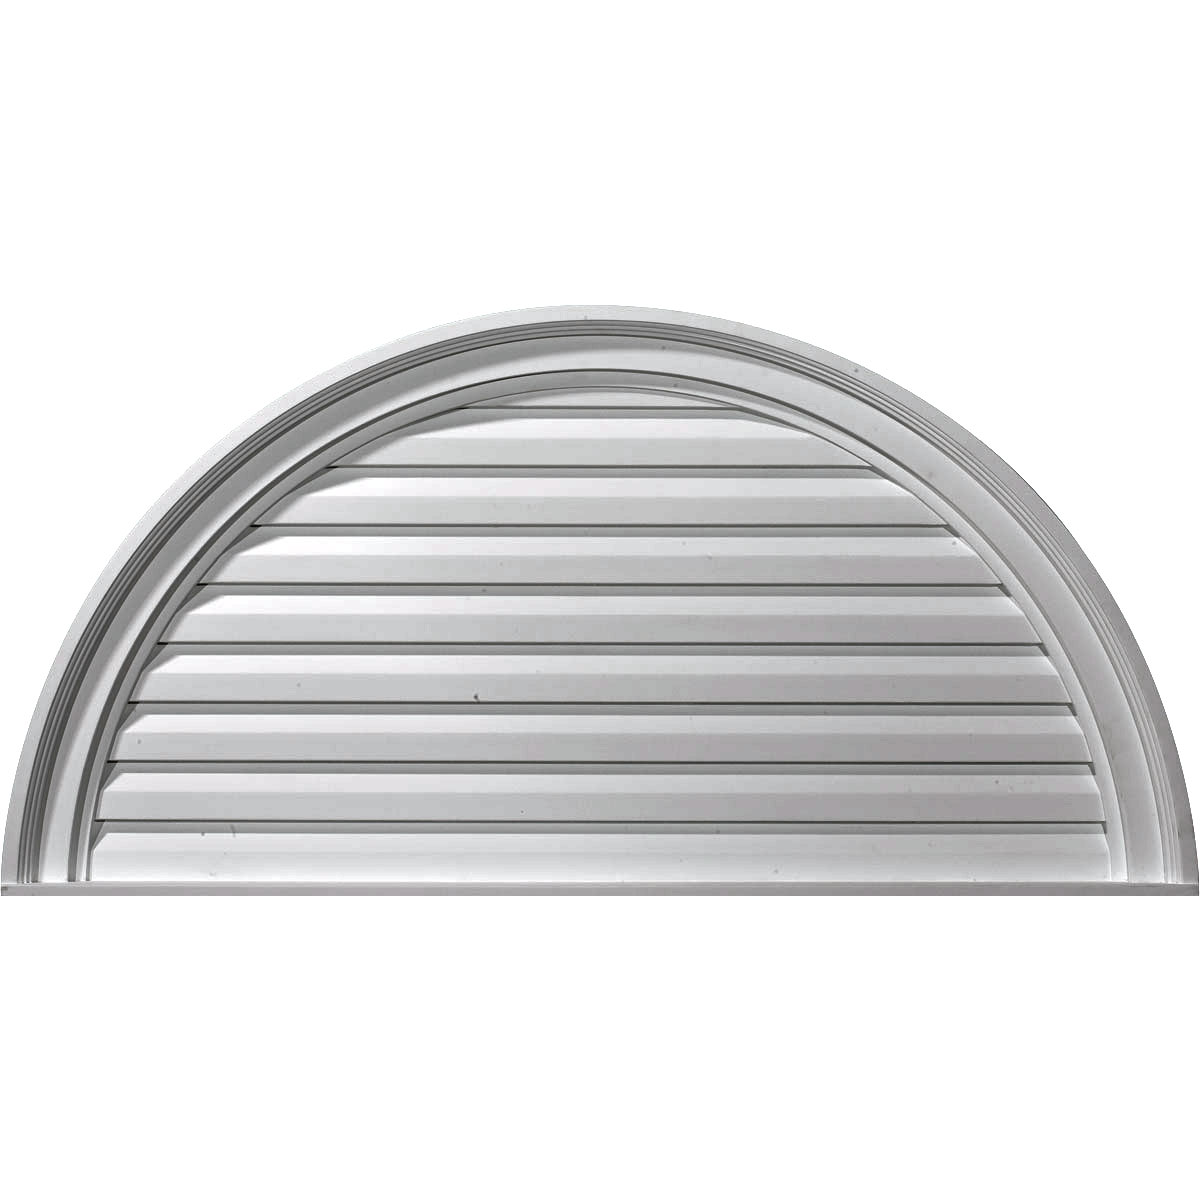 Ekena millwork gvhr36d 36 inch w x 18 inch h x 2 5 8 inch p for Decorative louvers